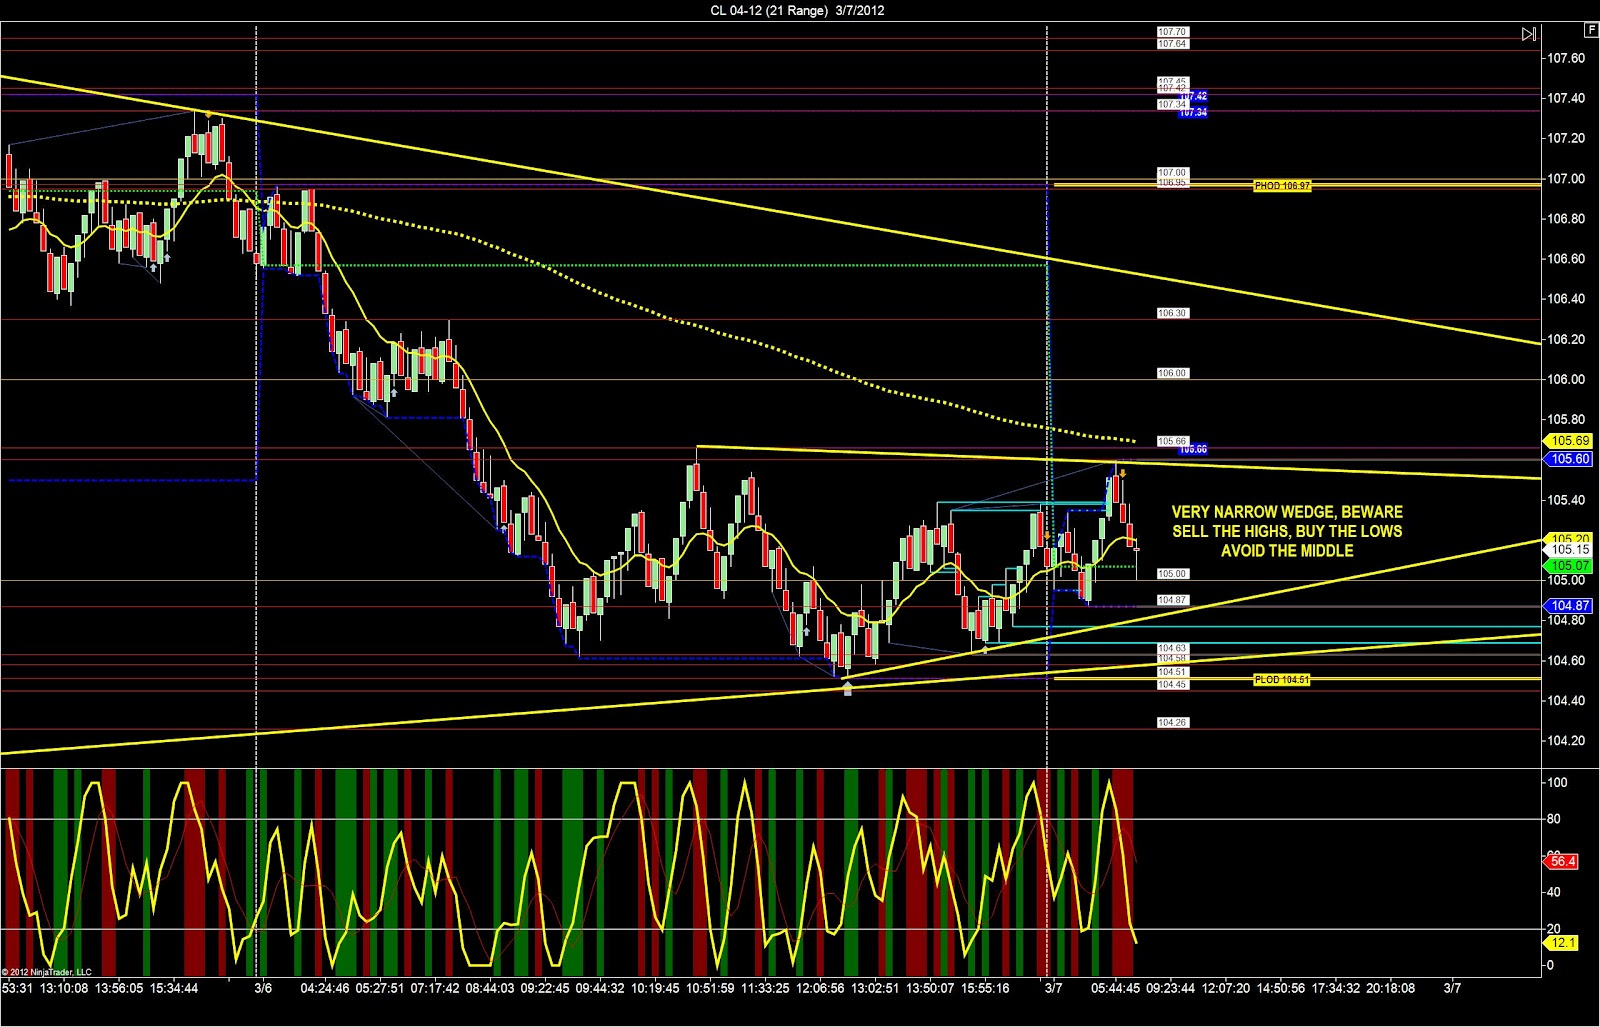 How to Trade Like a Professional Oil Trader - Crude Oil Trading Tips